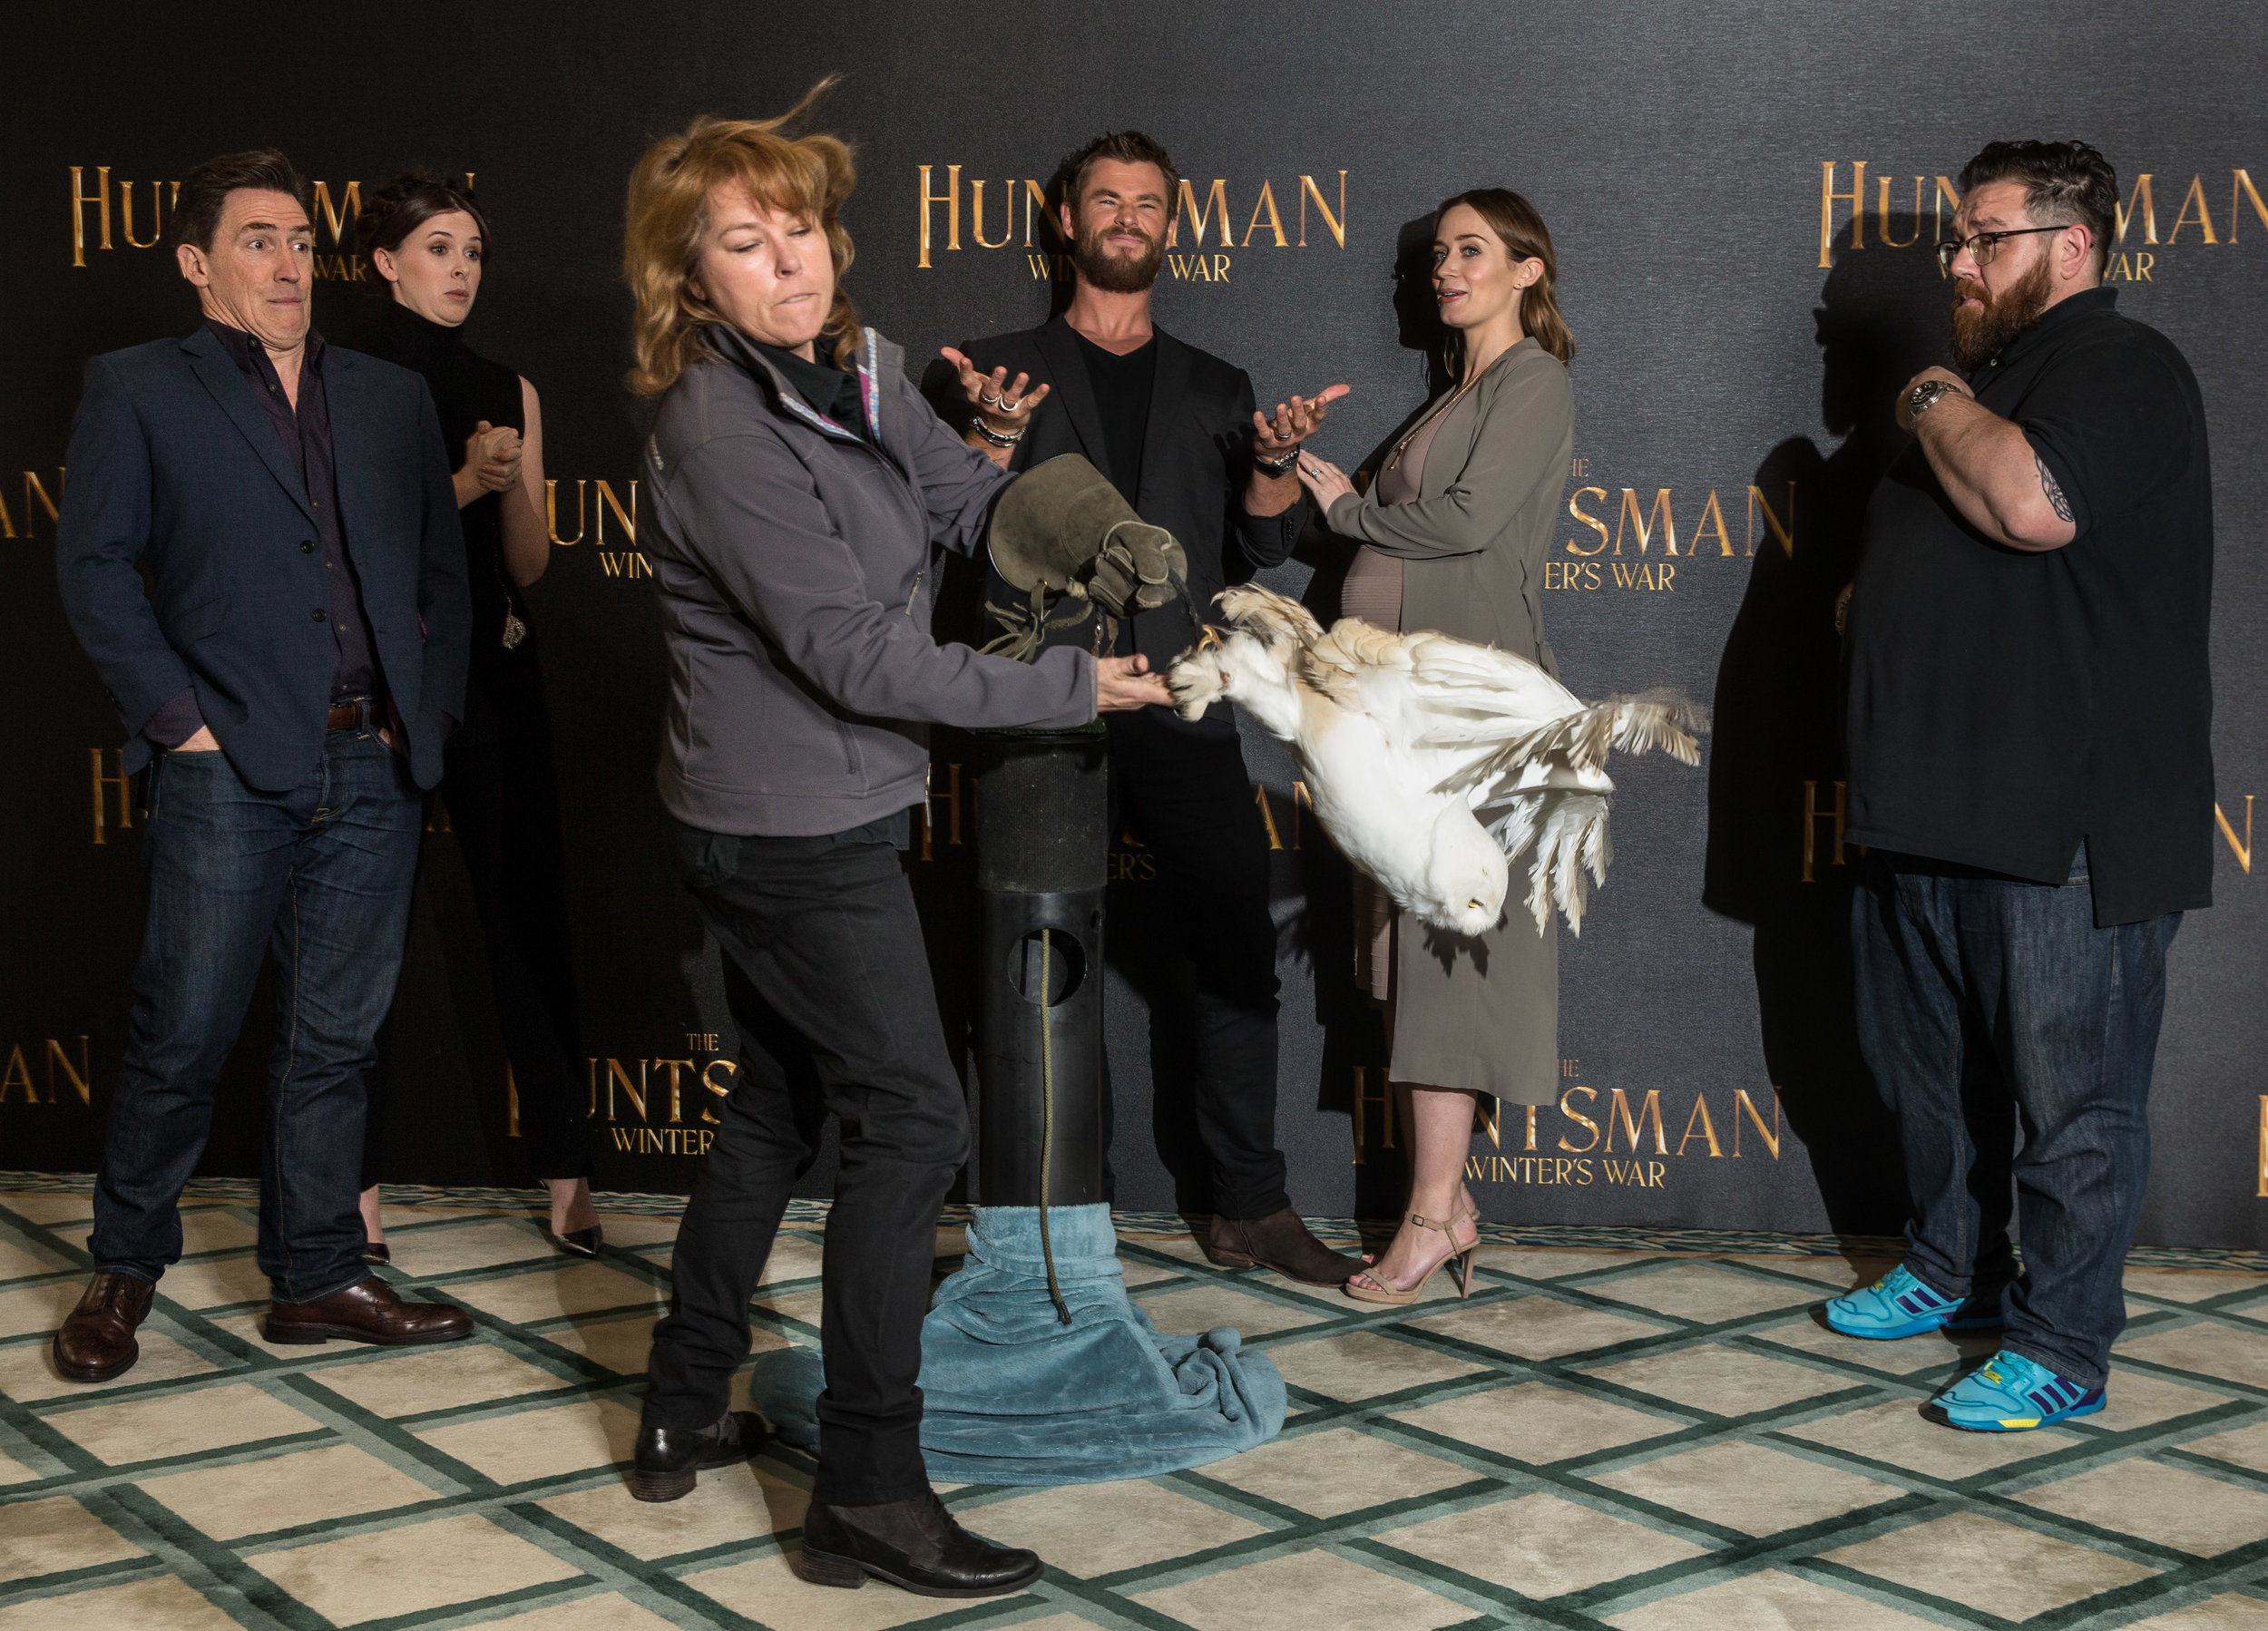 Rob Brydon, Alexandra Roach, Chris Hemsworth, Emily Blunt and Nick Frost with Mr McSchmoogle (A snowy owl)